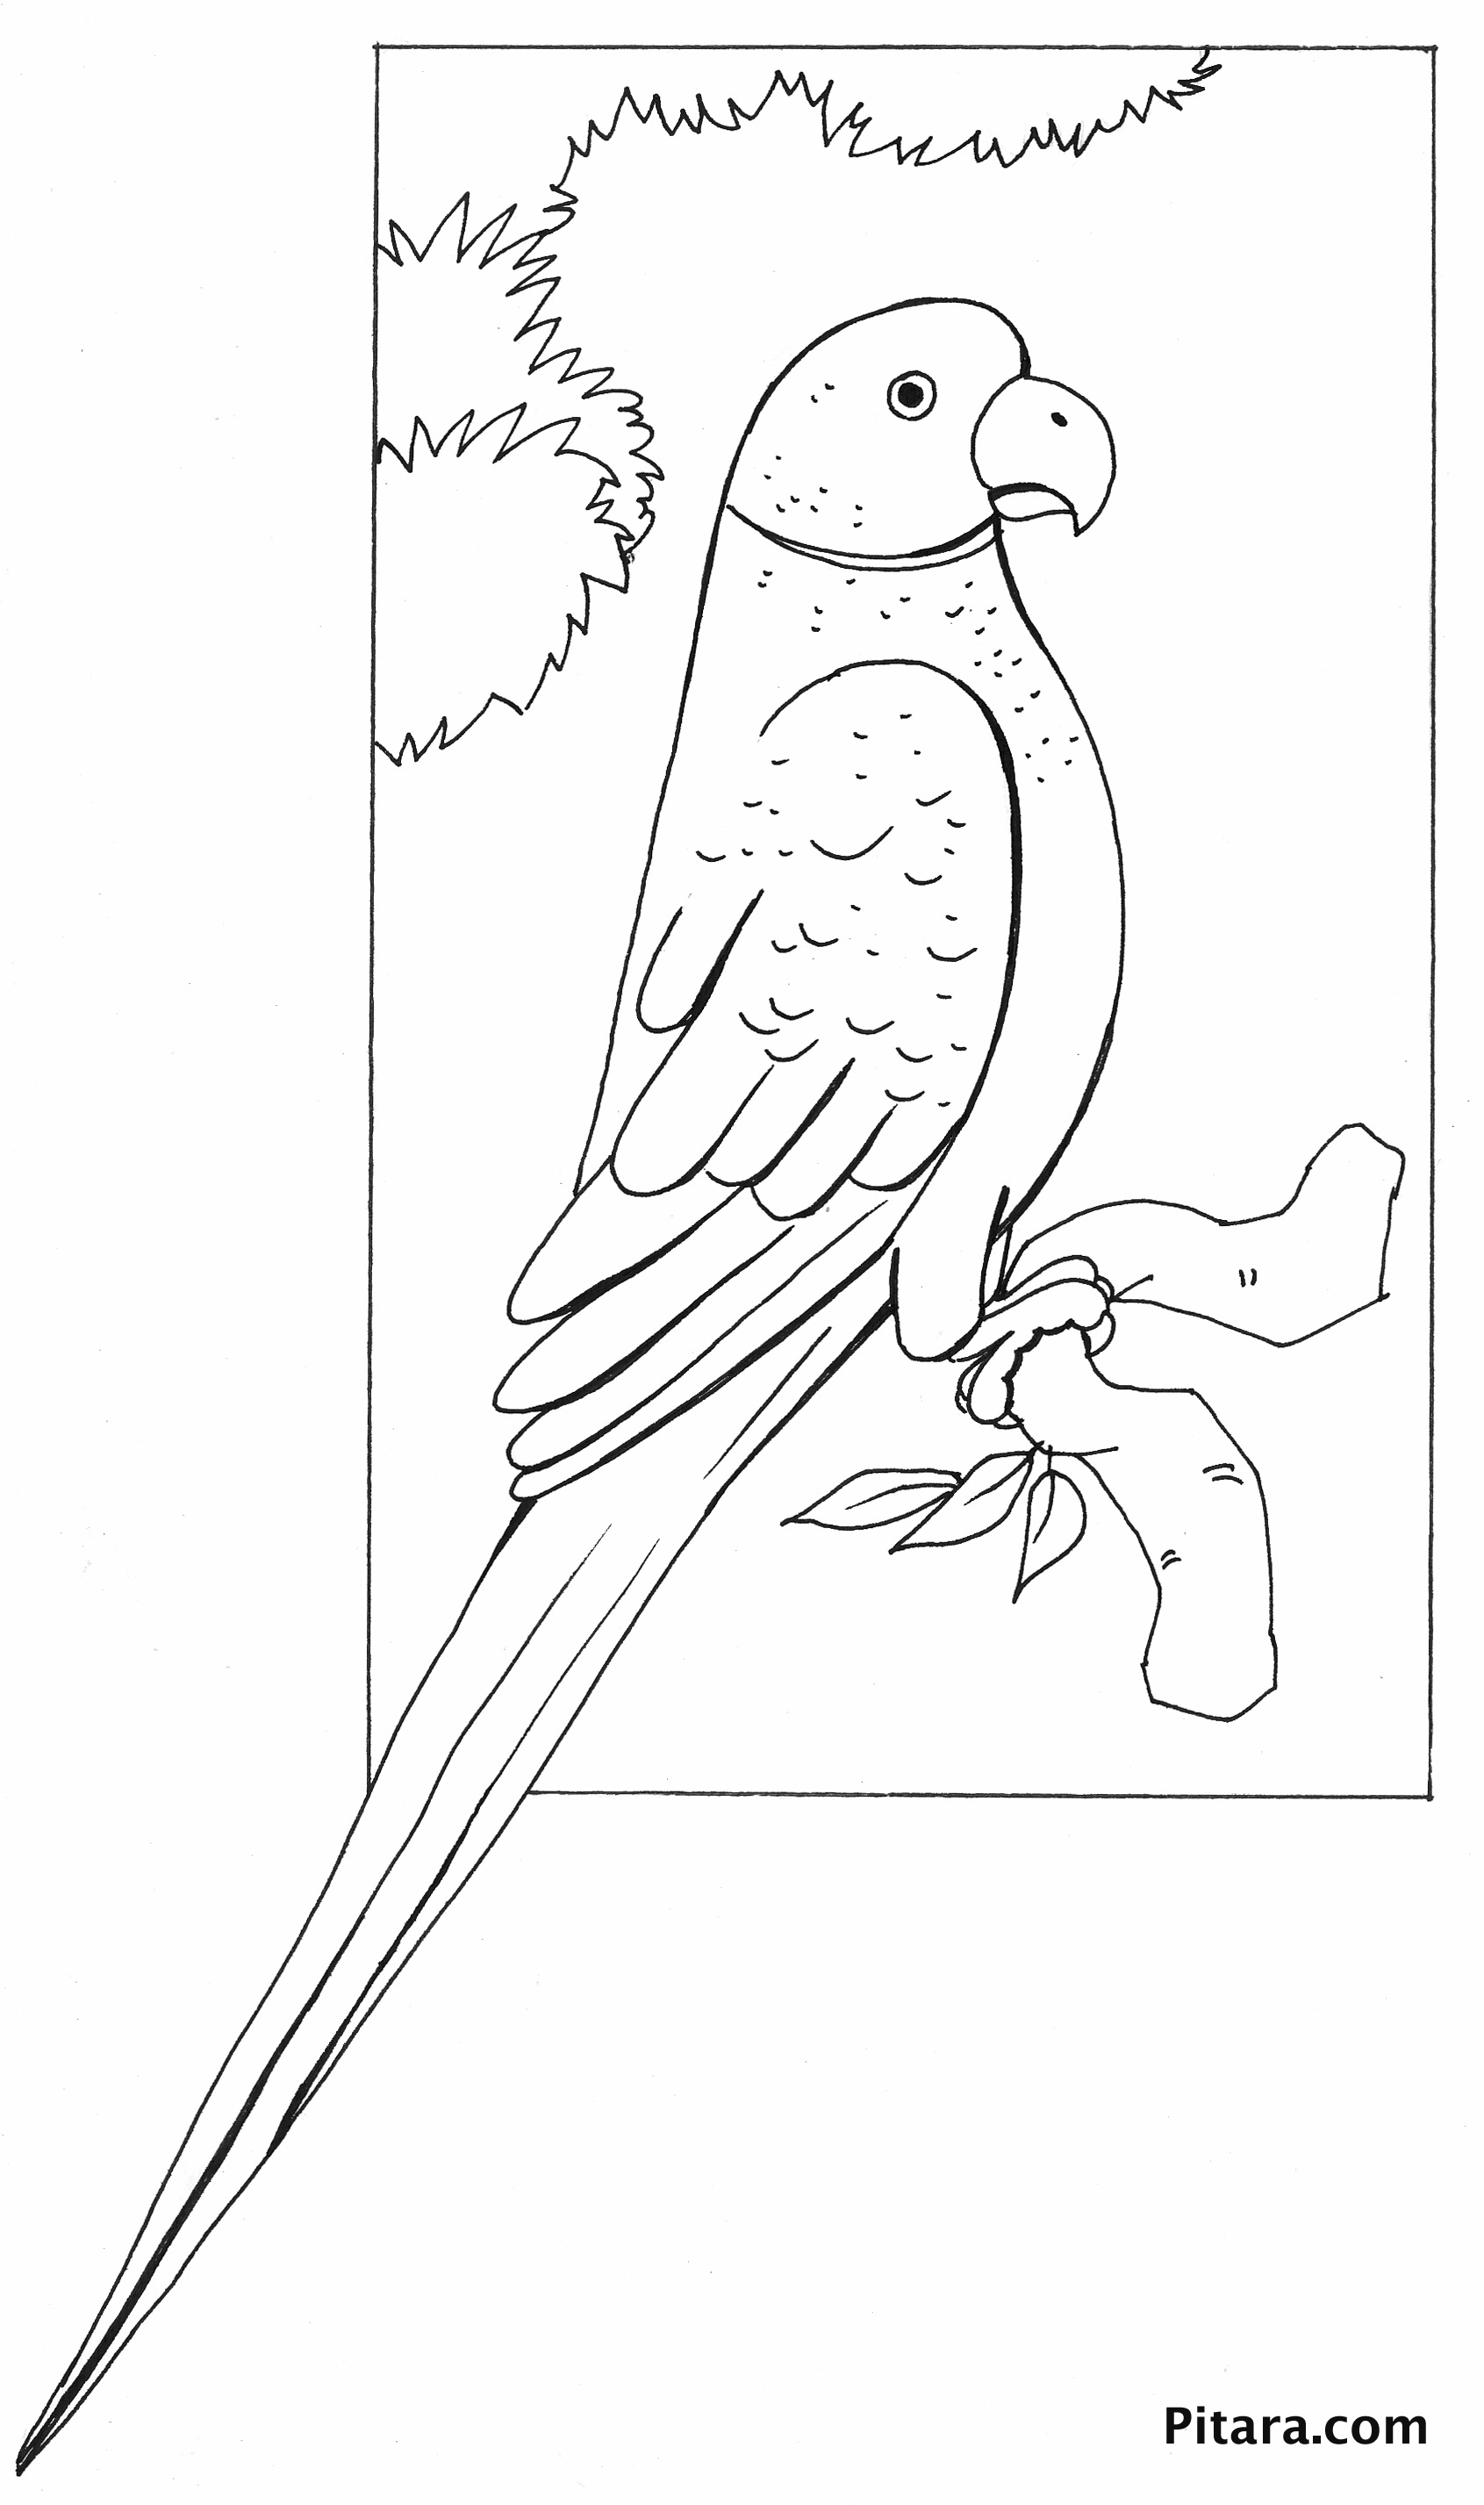 Parrot – Coloring page